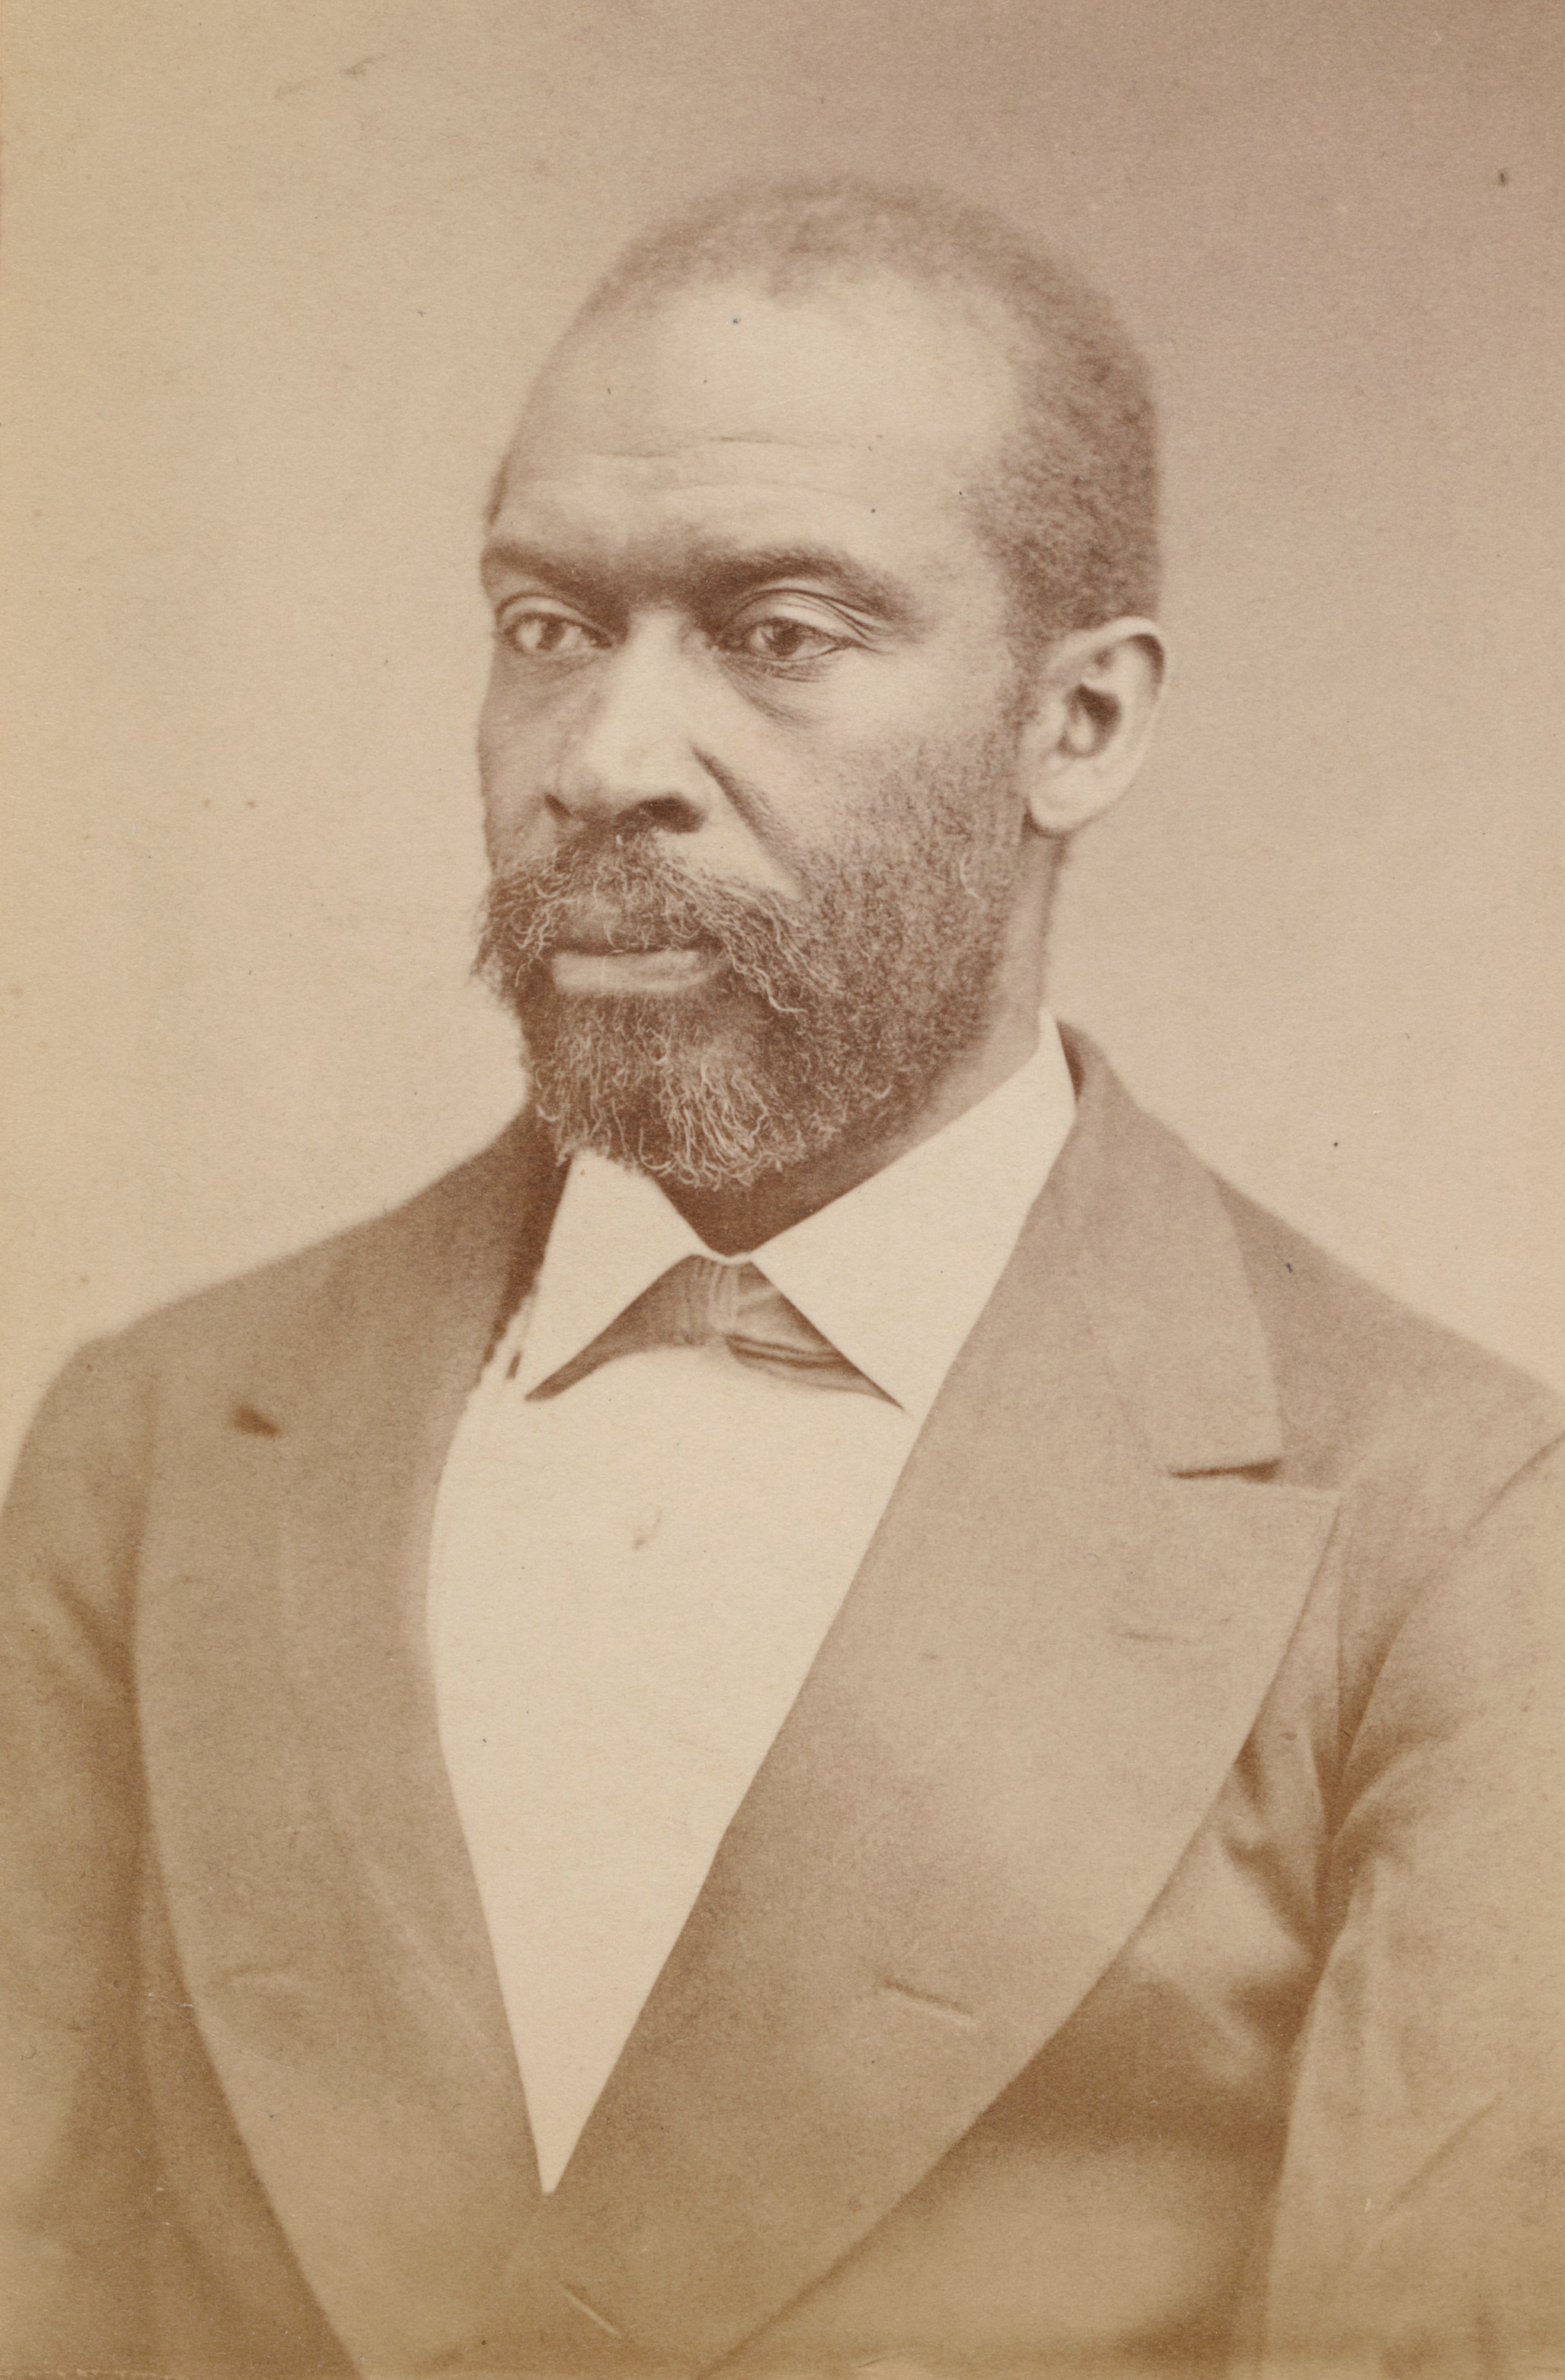 Chester circa 1870 at the age of 36.